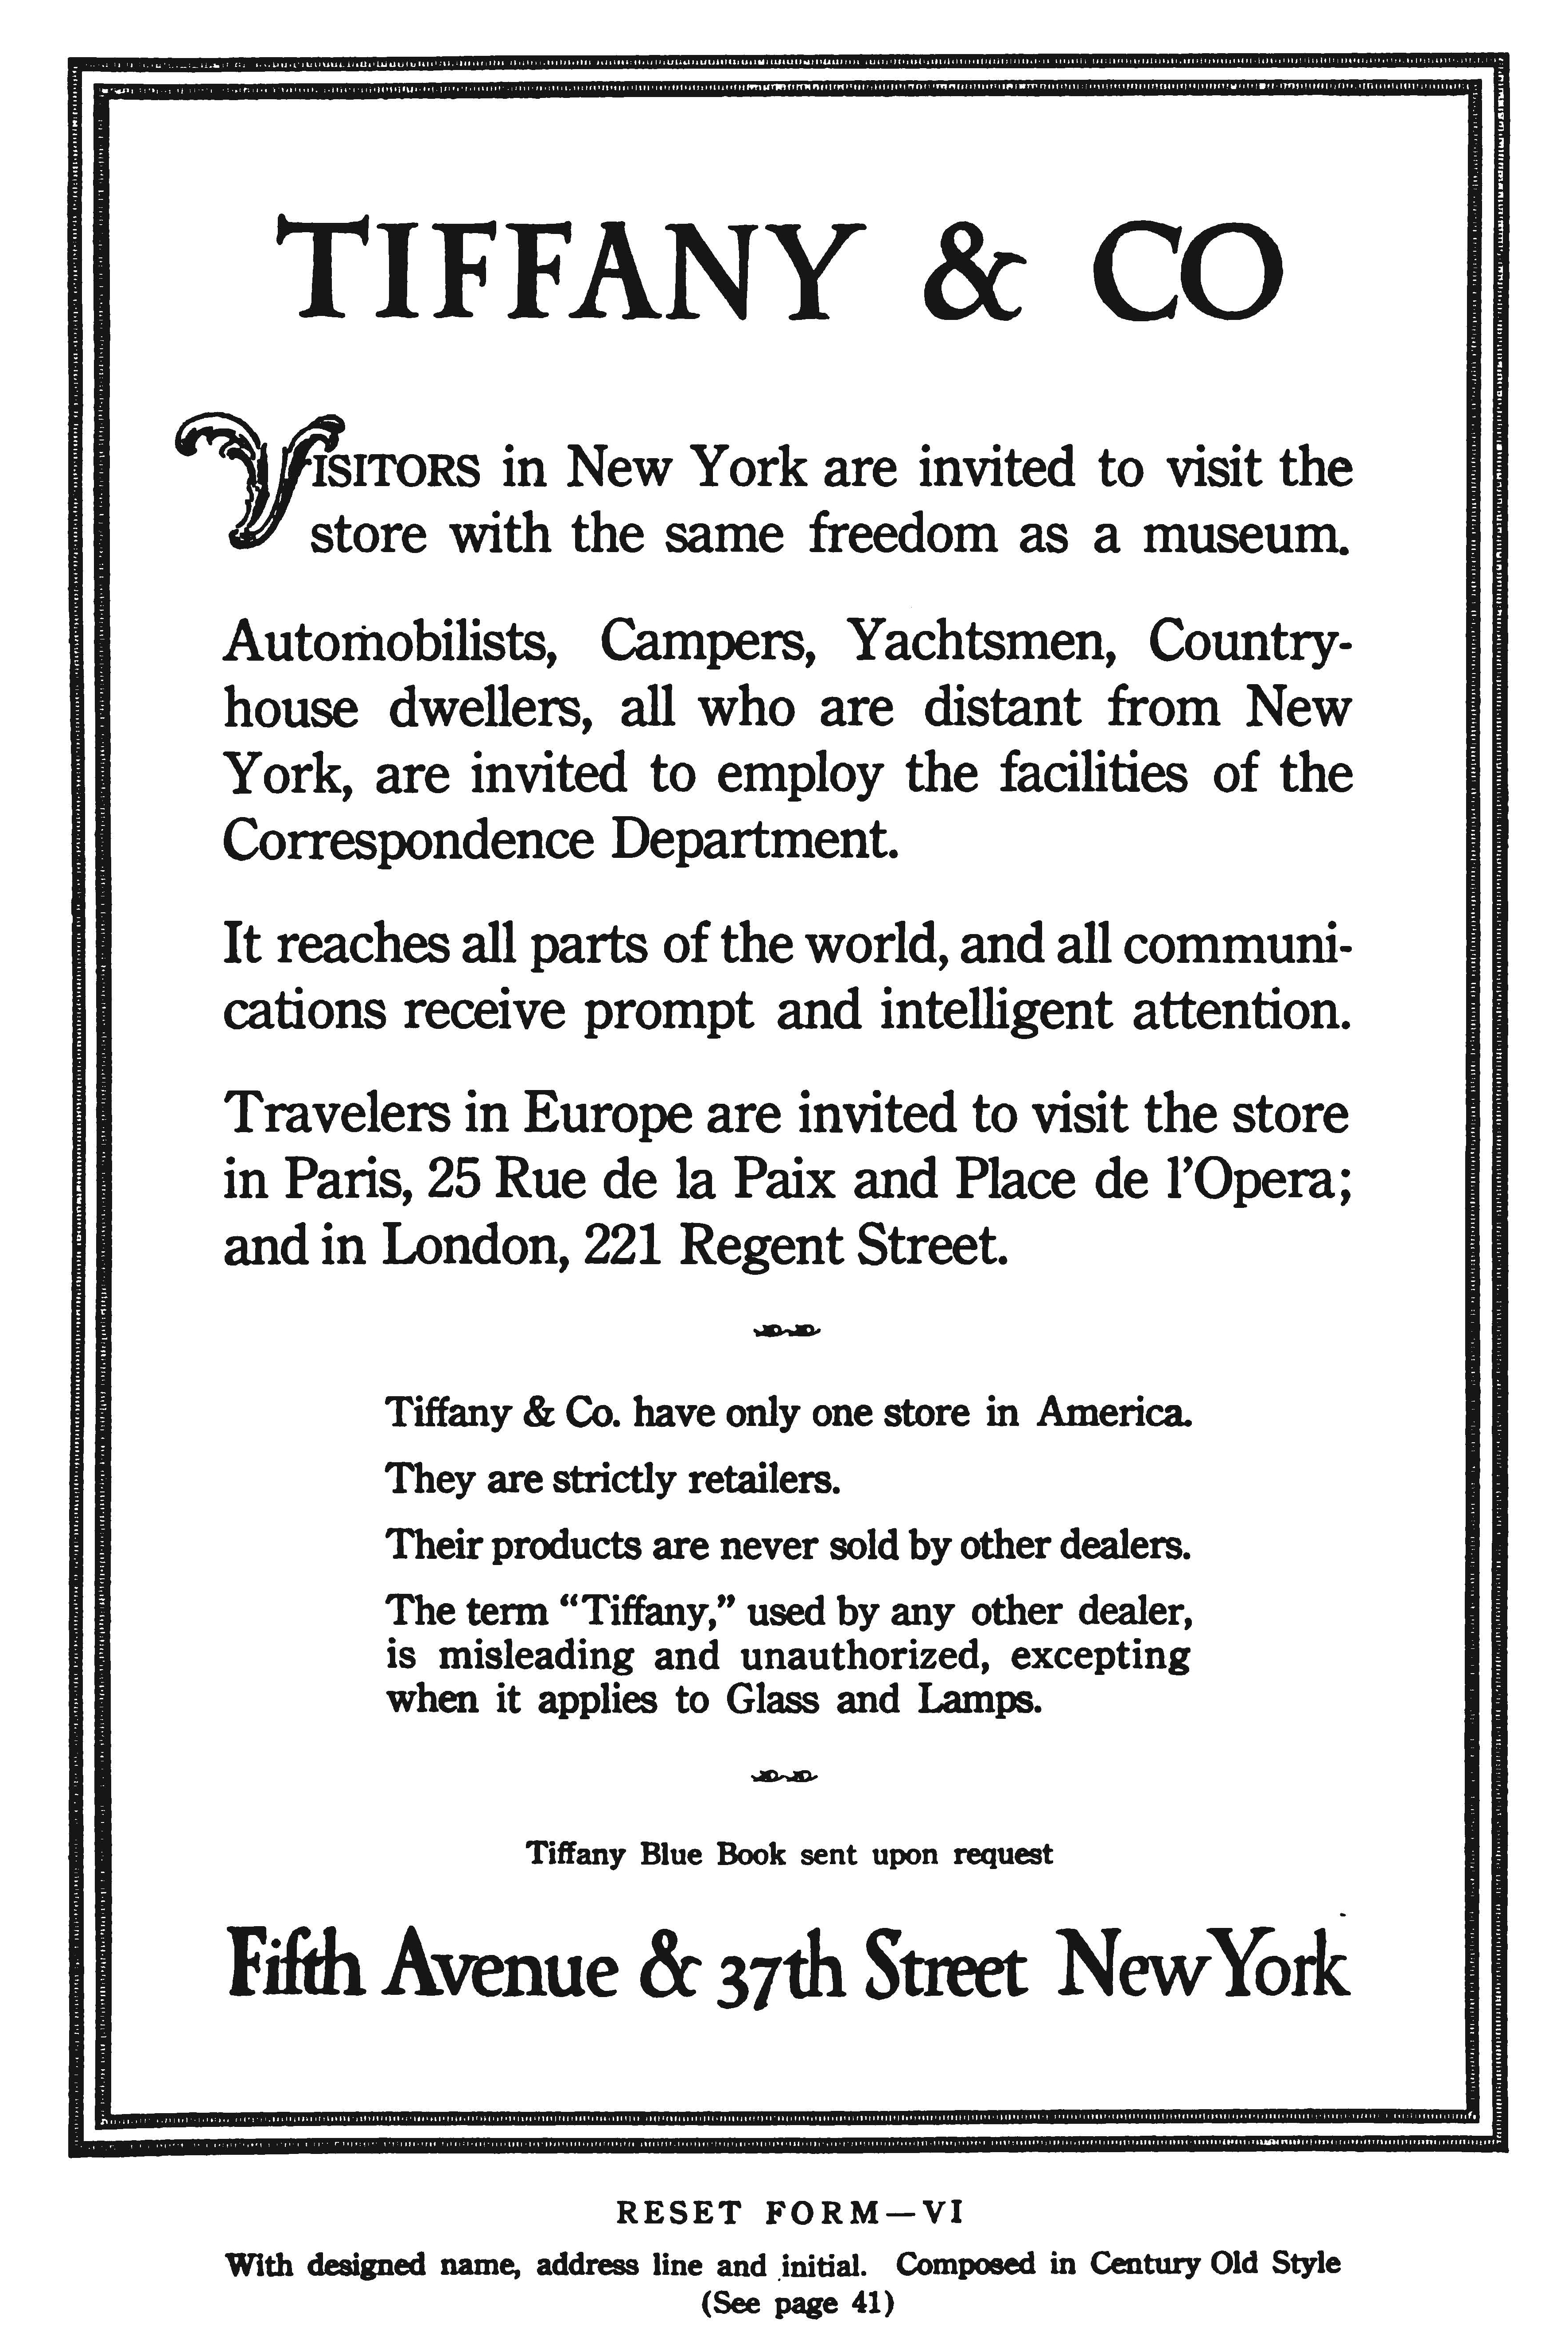 Redesigned Tiffany & Co. advertisement by W.A. Dwiggins.